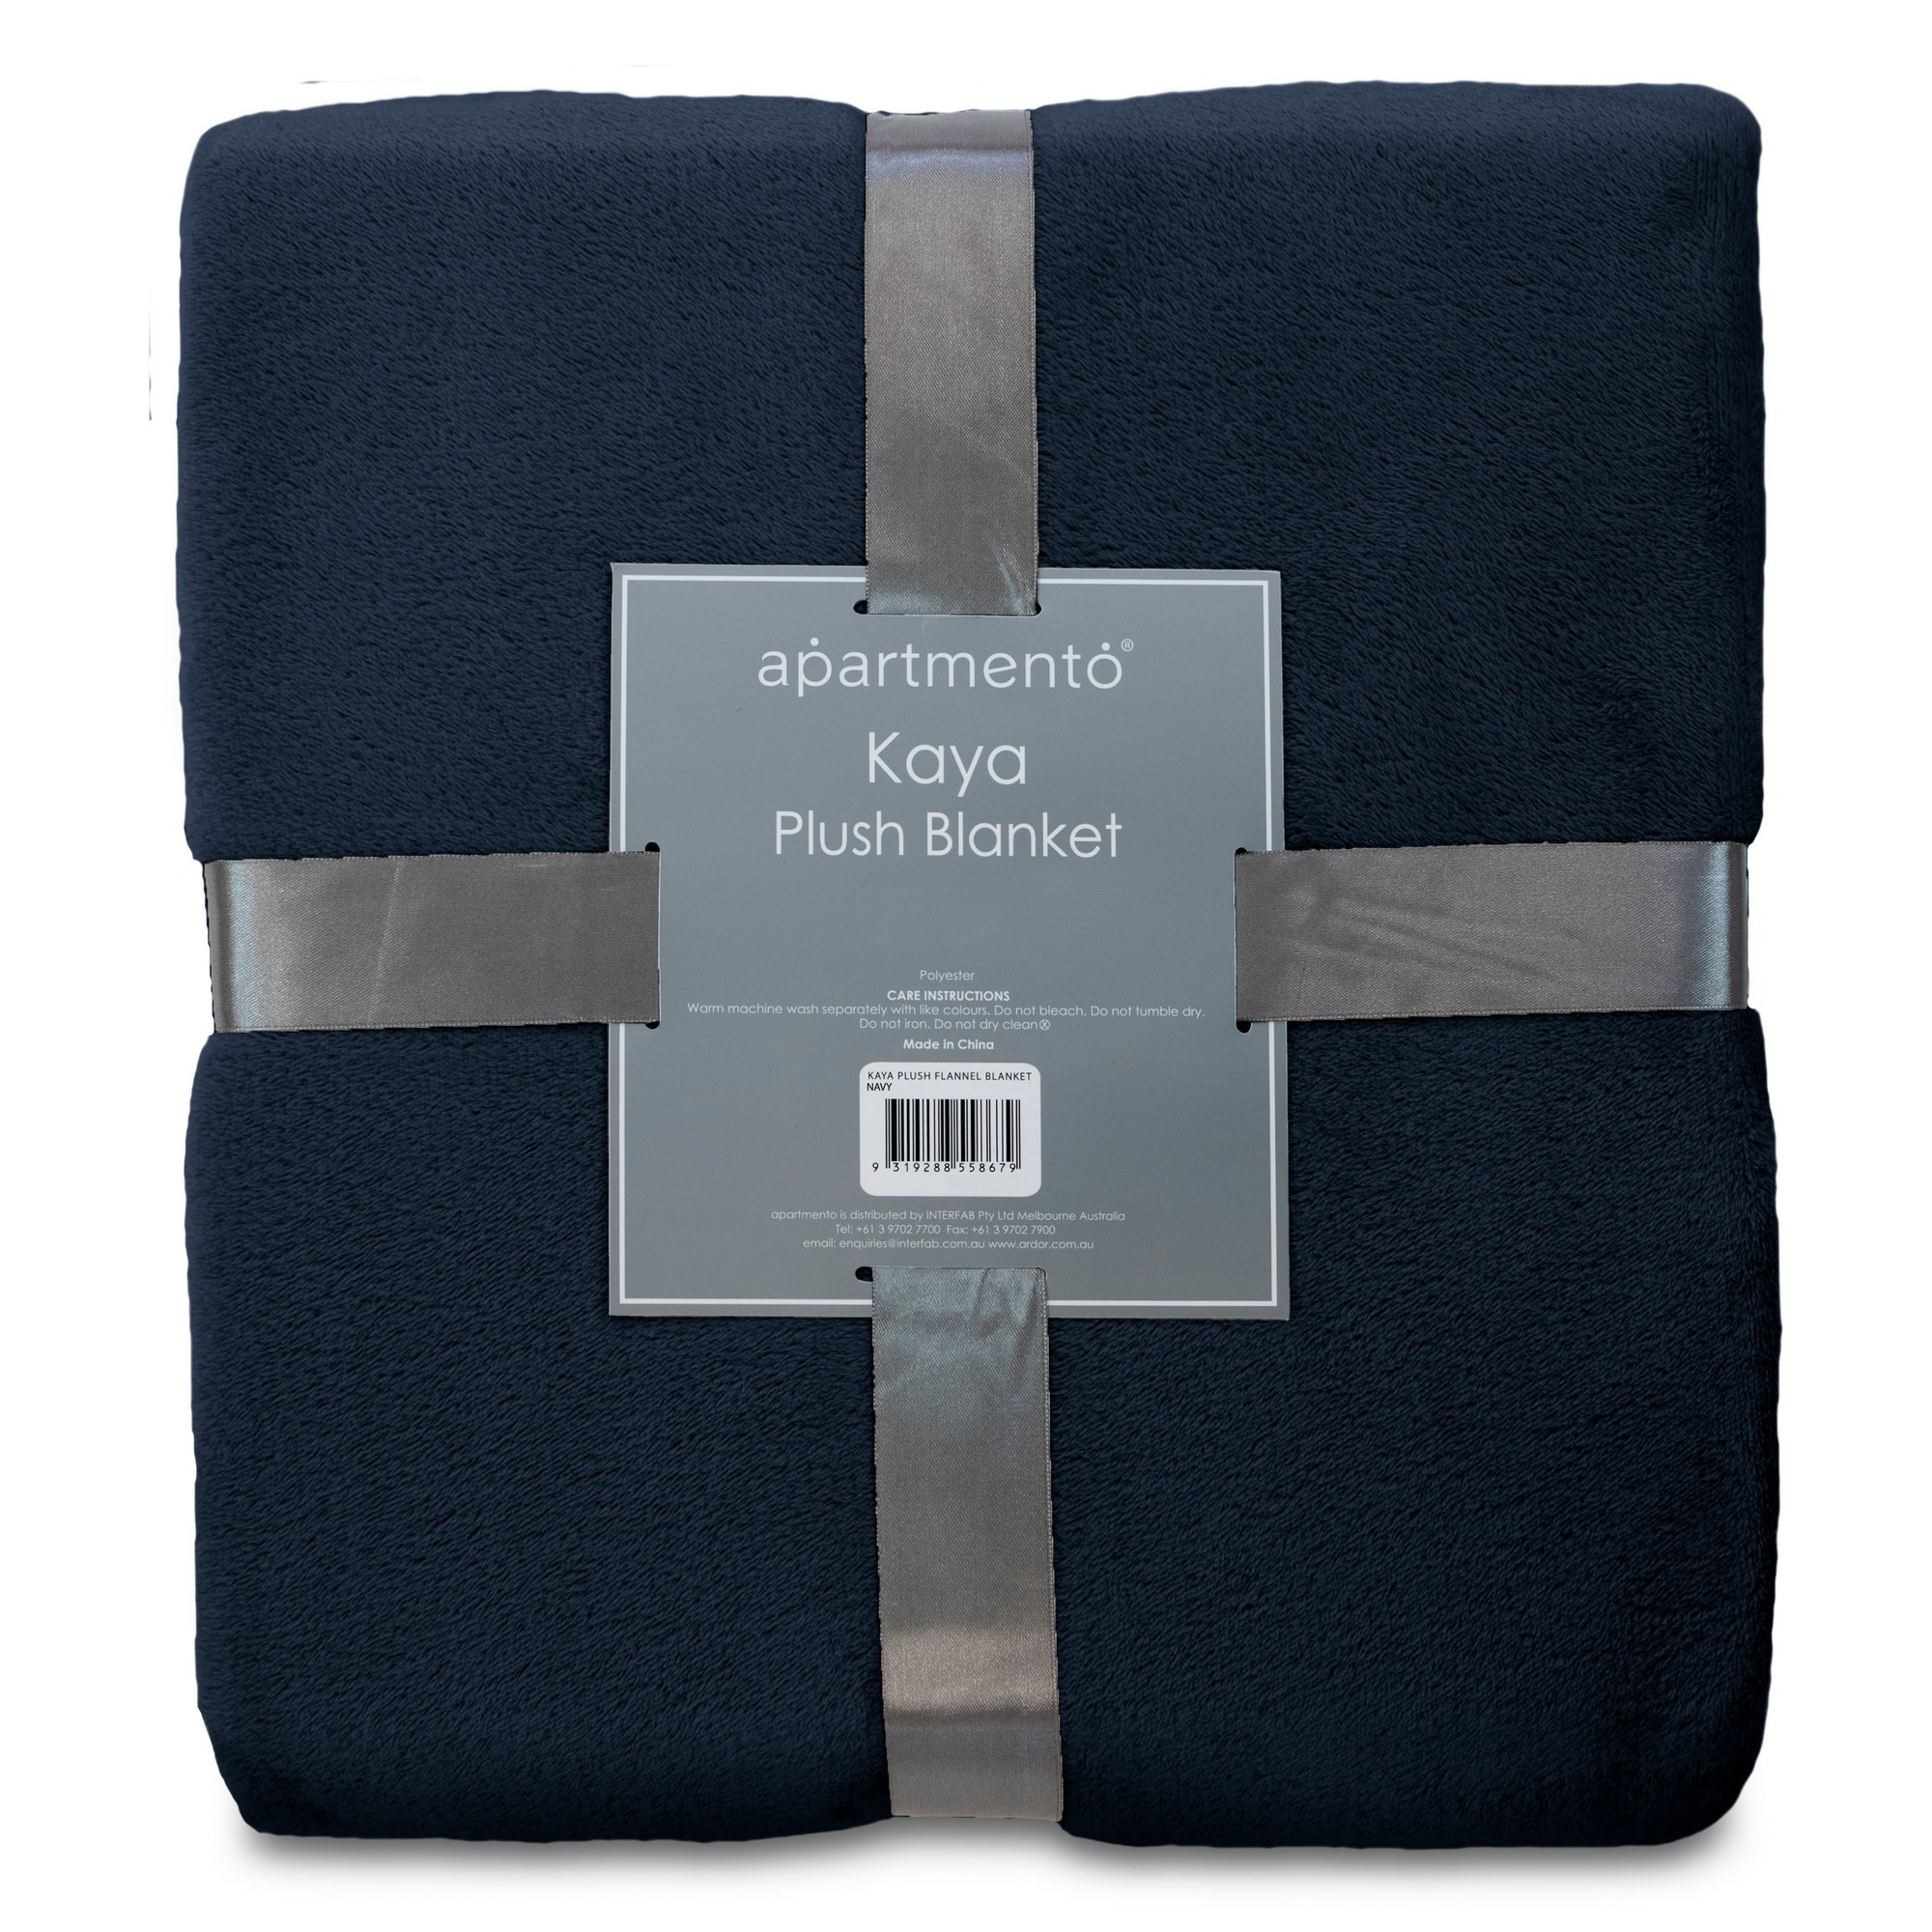 Apartmento Kaya Flannel Plush Blanket, 160x228cm, Navy